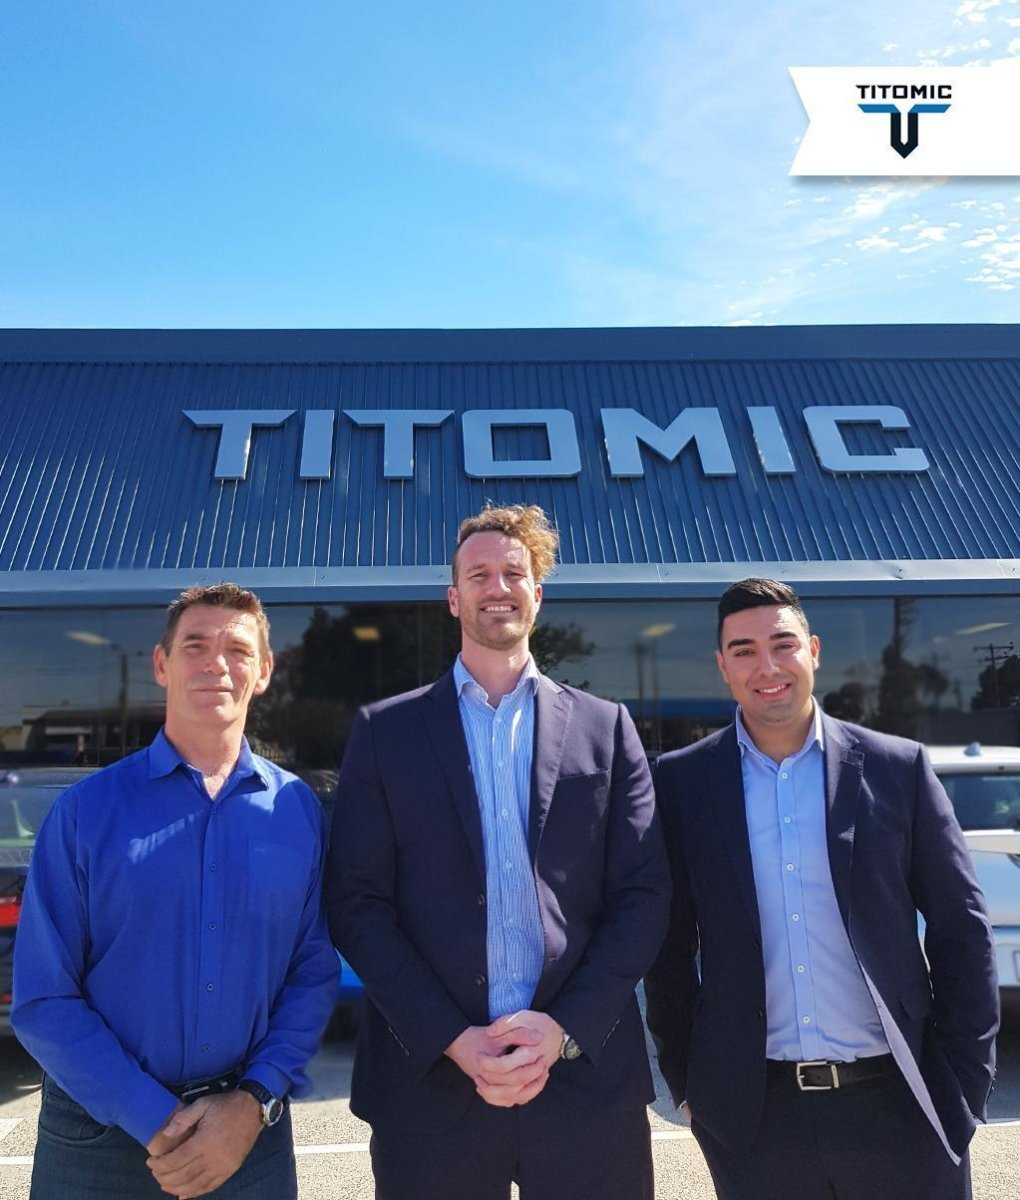 Jeff Lang (left), Nathan Kalisch, Founder of TAUV (centre) with Titomic Sales Manager Elias Baini (right). Image via Titomic.